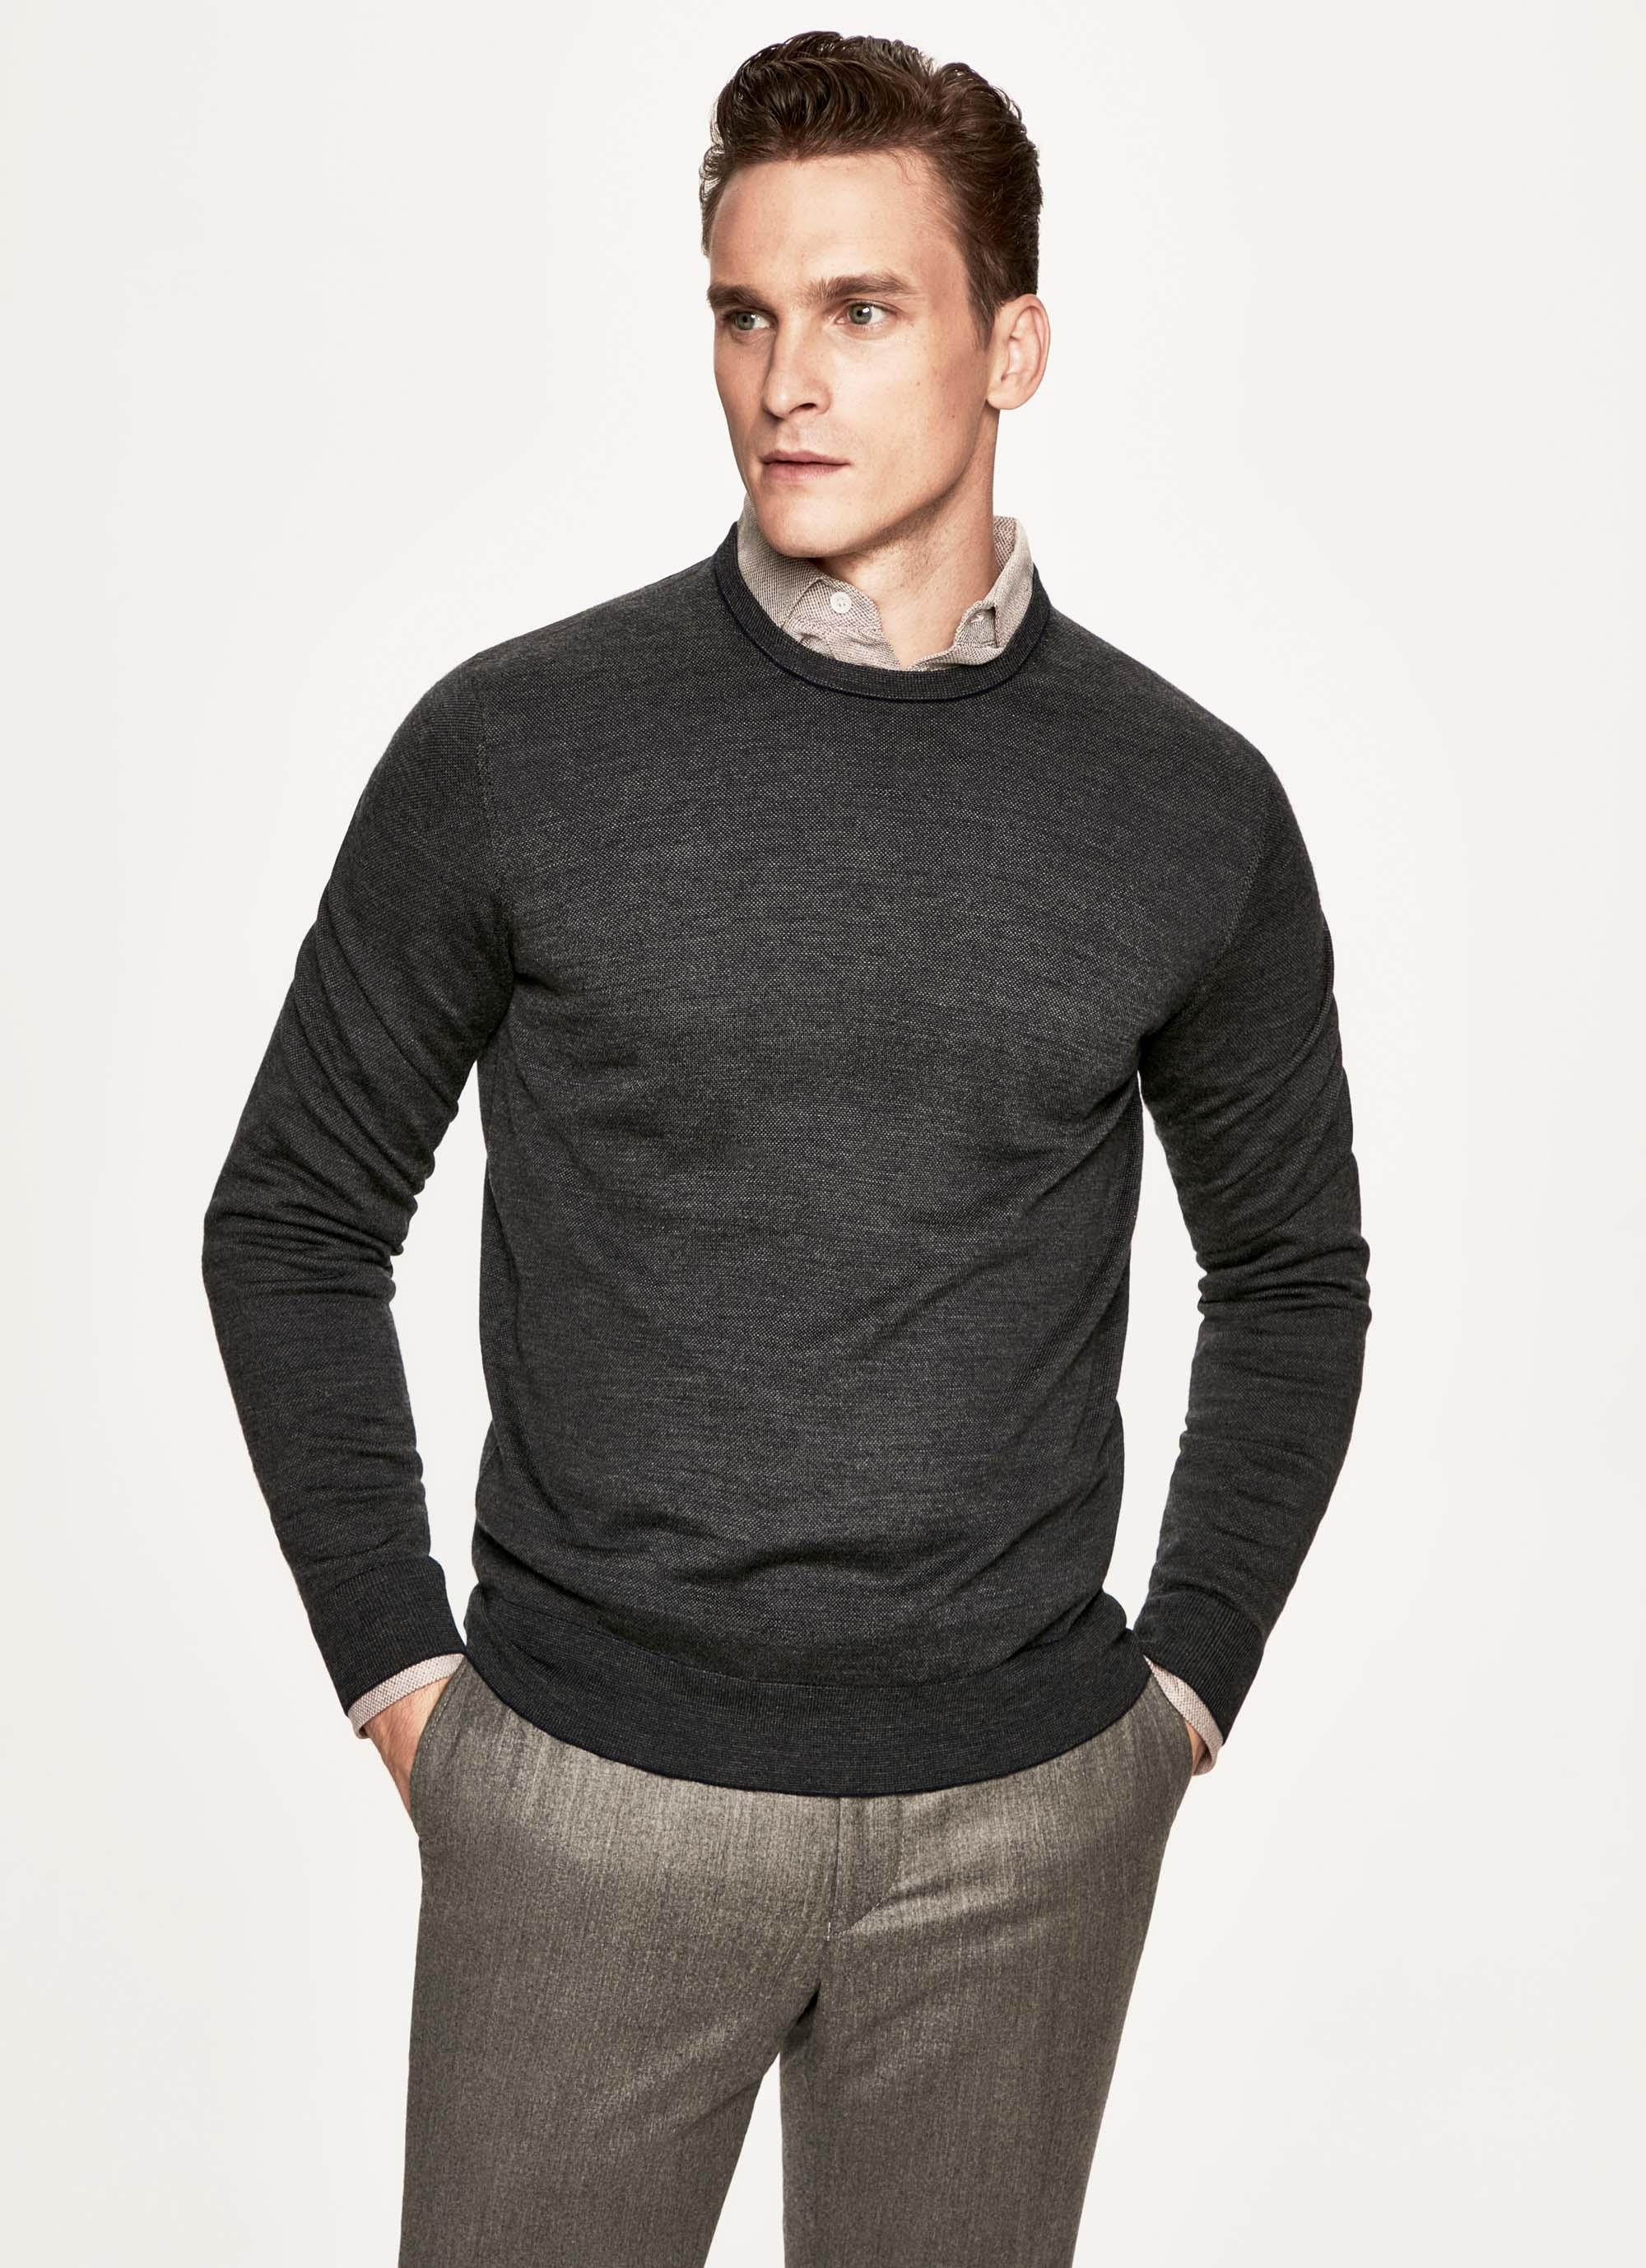 Hackett Jacquard Knit Wool, Cashmere And Silk Crew Neck Sweater In Navy